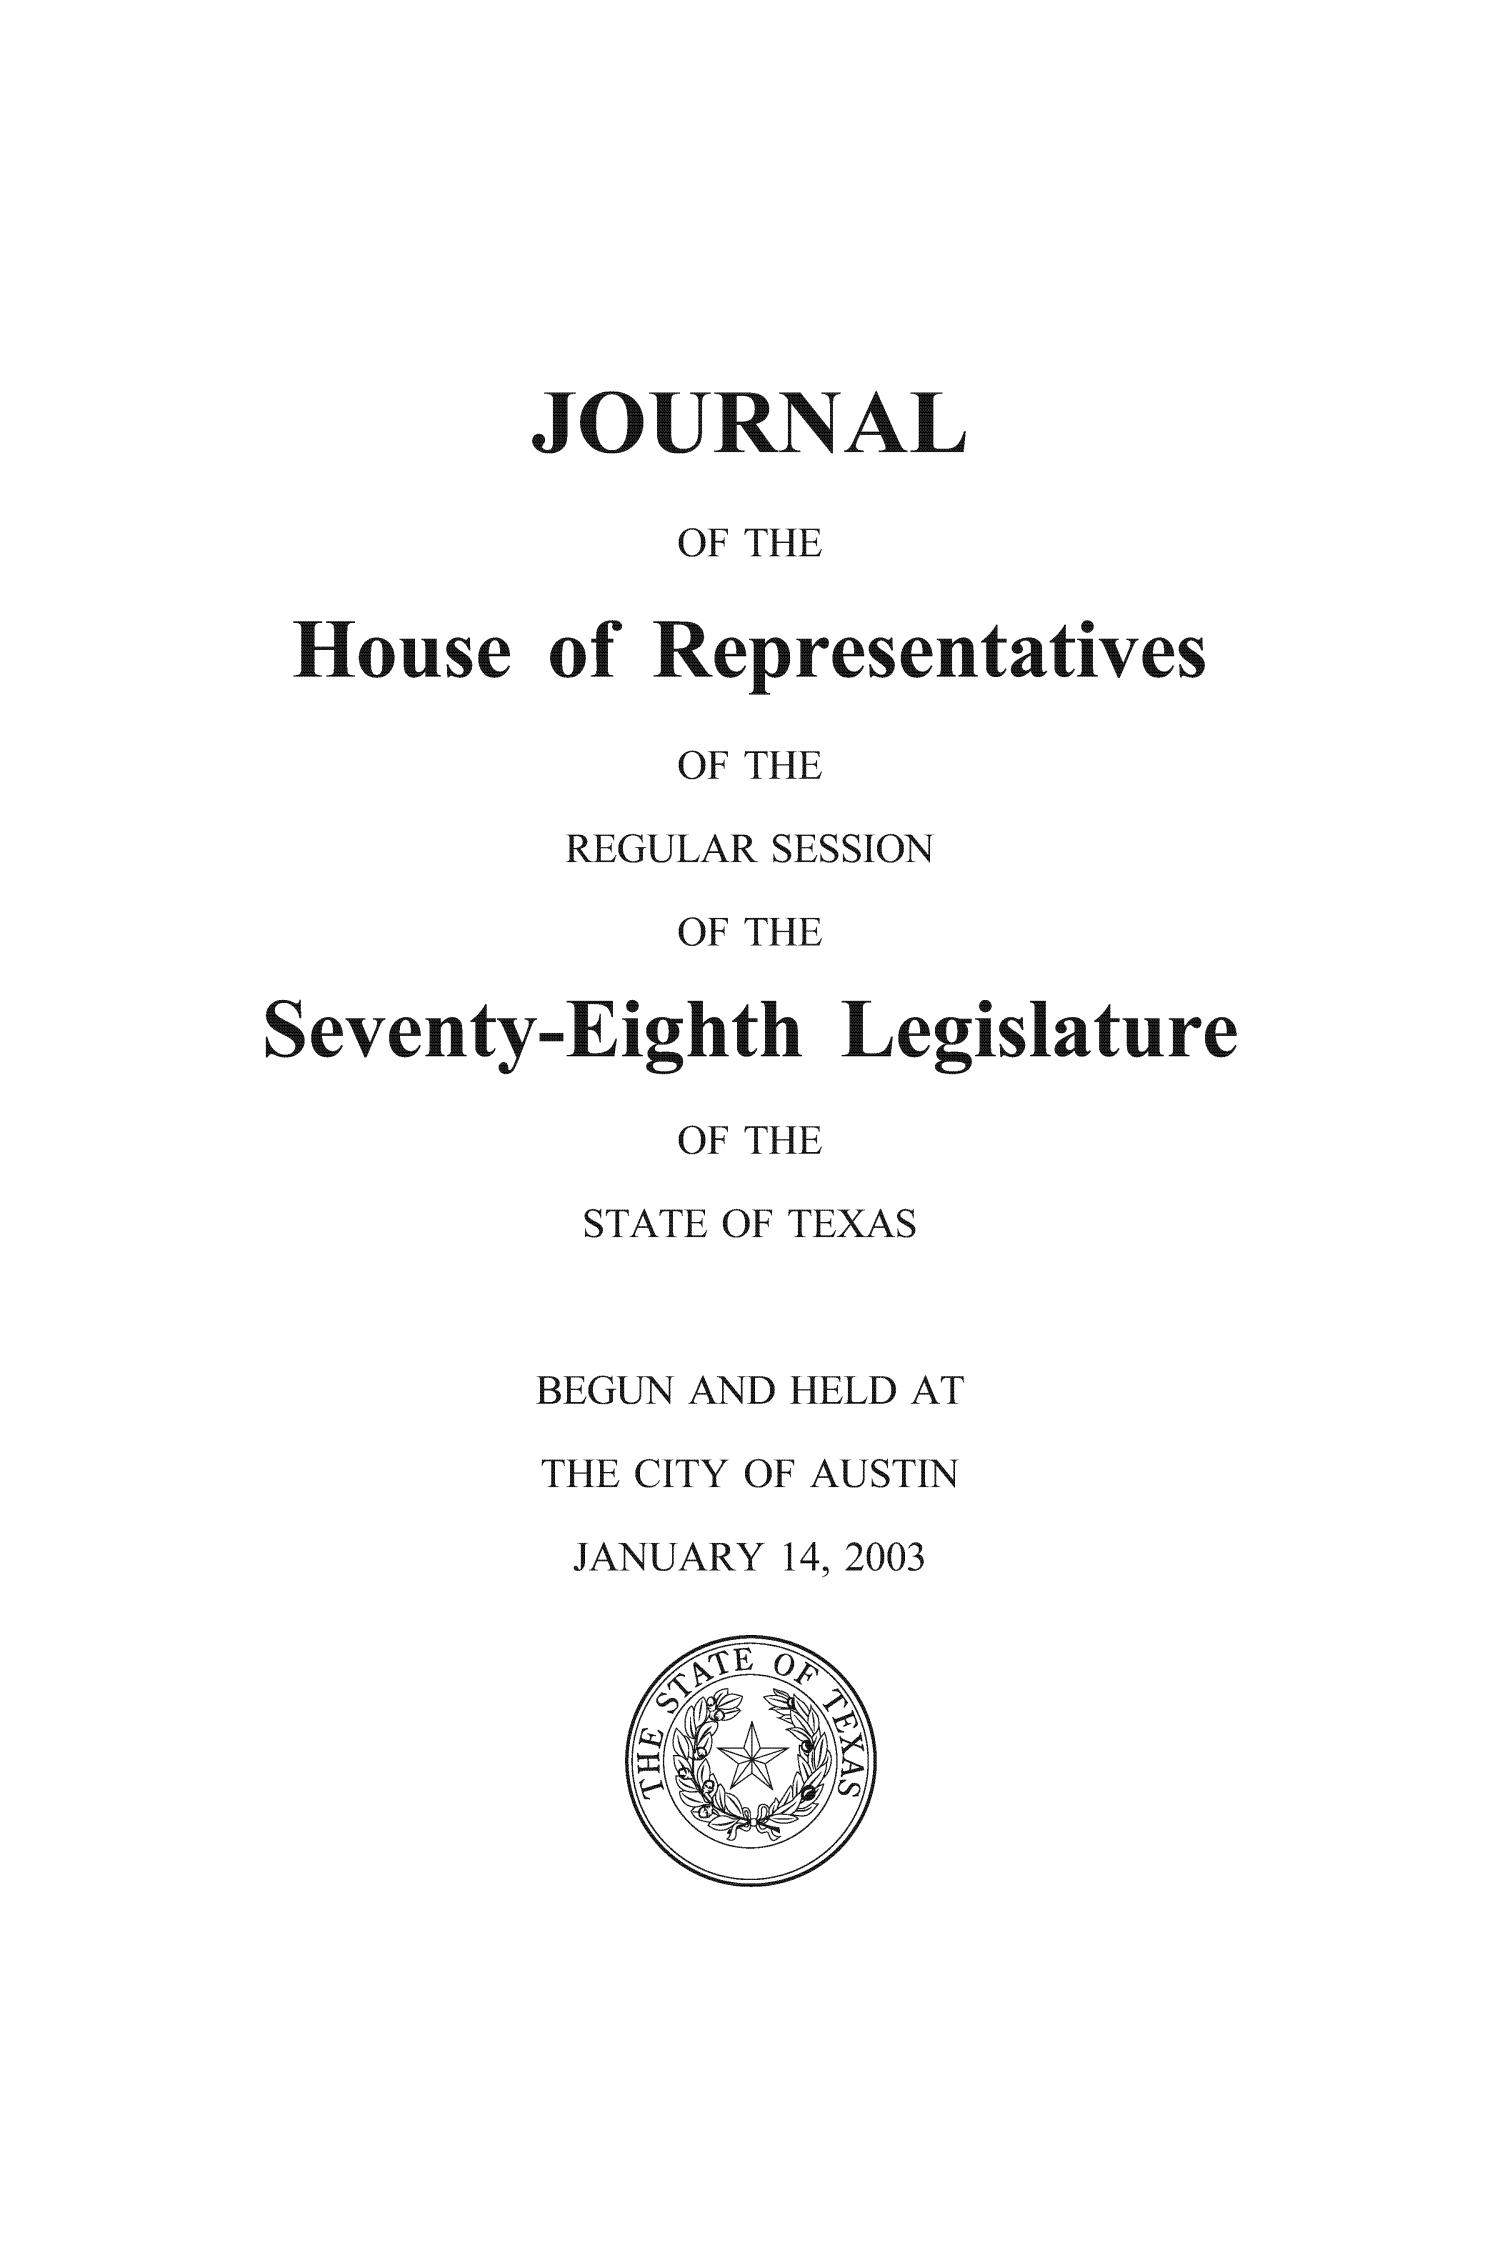 Journal of the House of Representatives of the Regular Session of the Seventy-Eighth Legislature of the State of Texas, Volume 6                                                                                                      Title Page